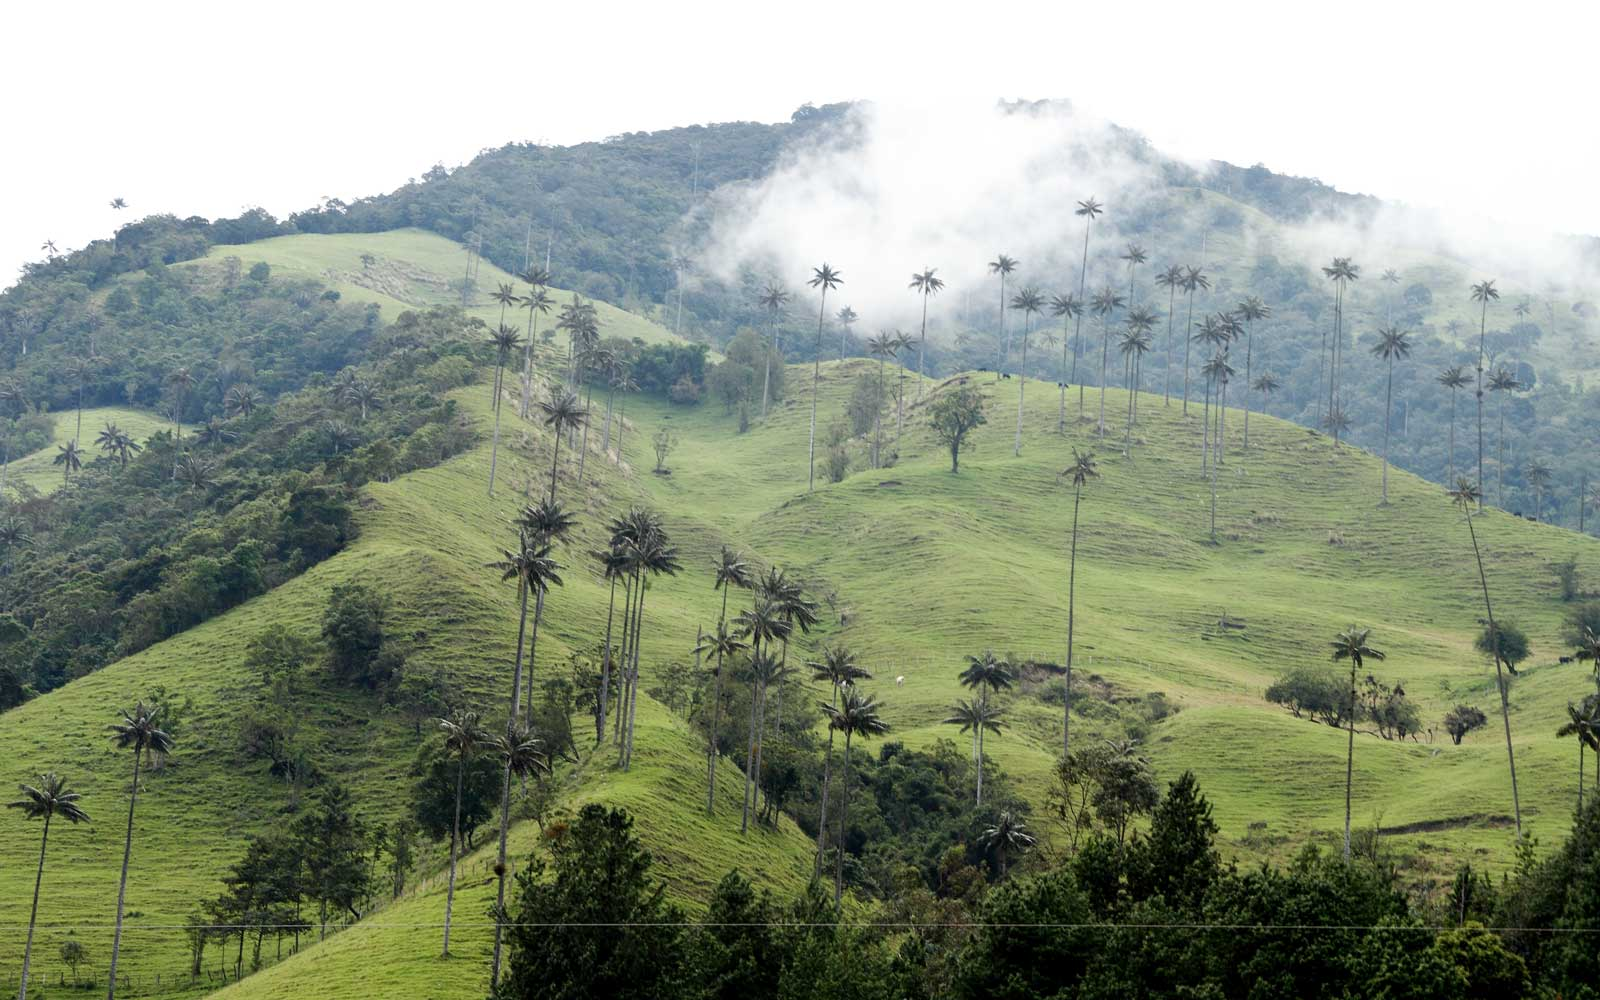 Valle de Cocora, in Los Nevados National Park, Colombia